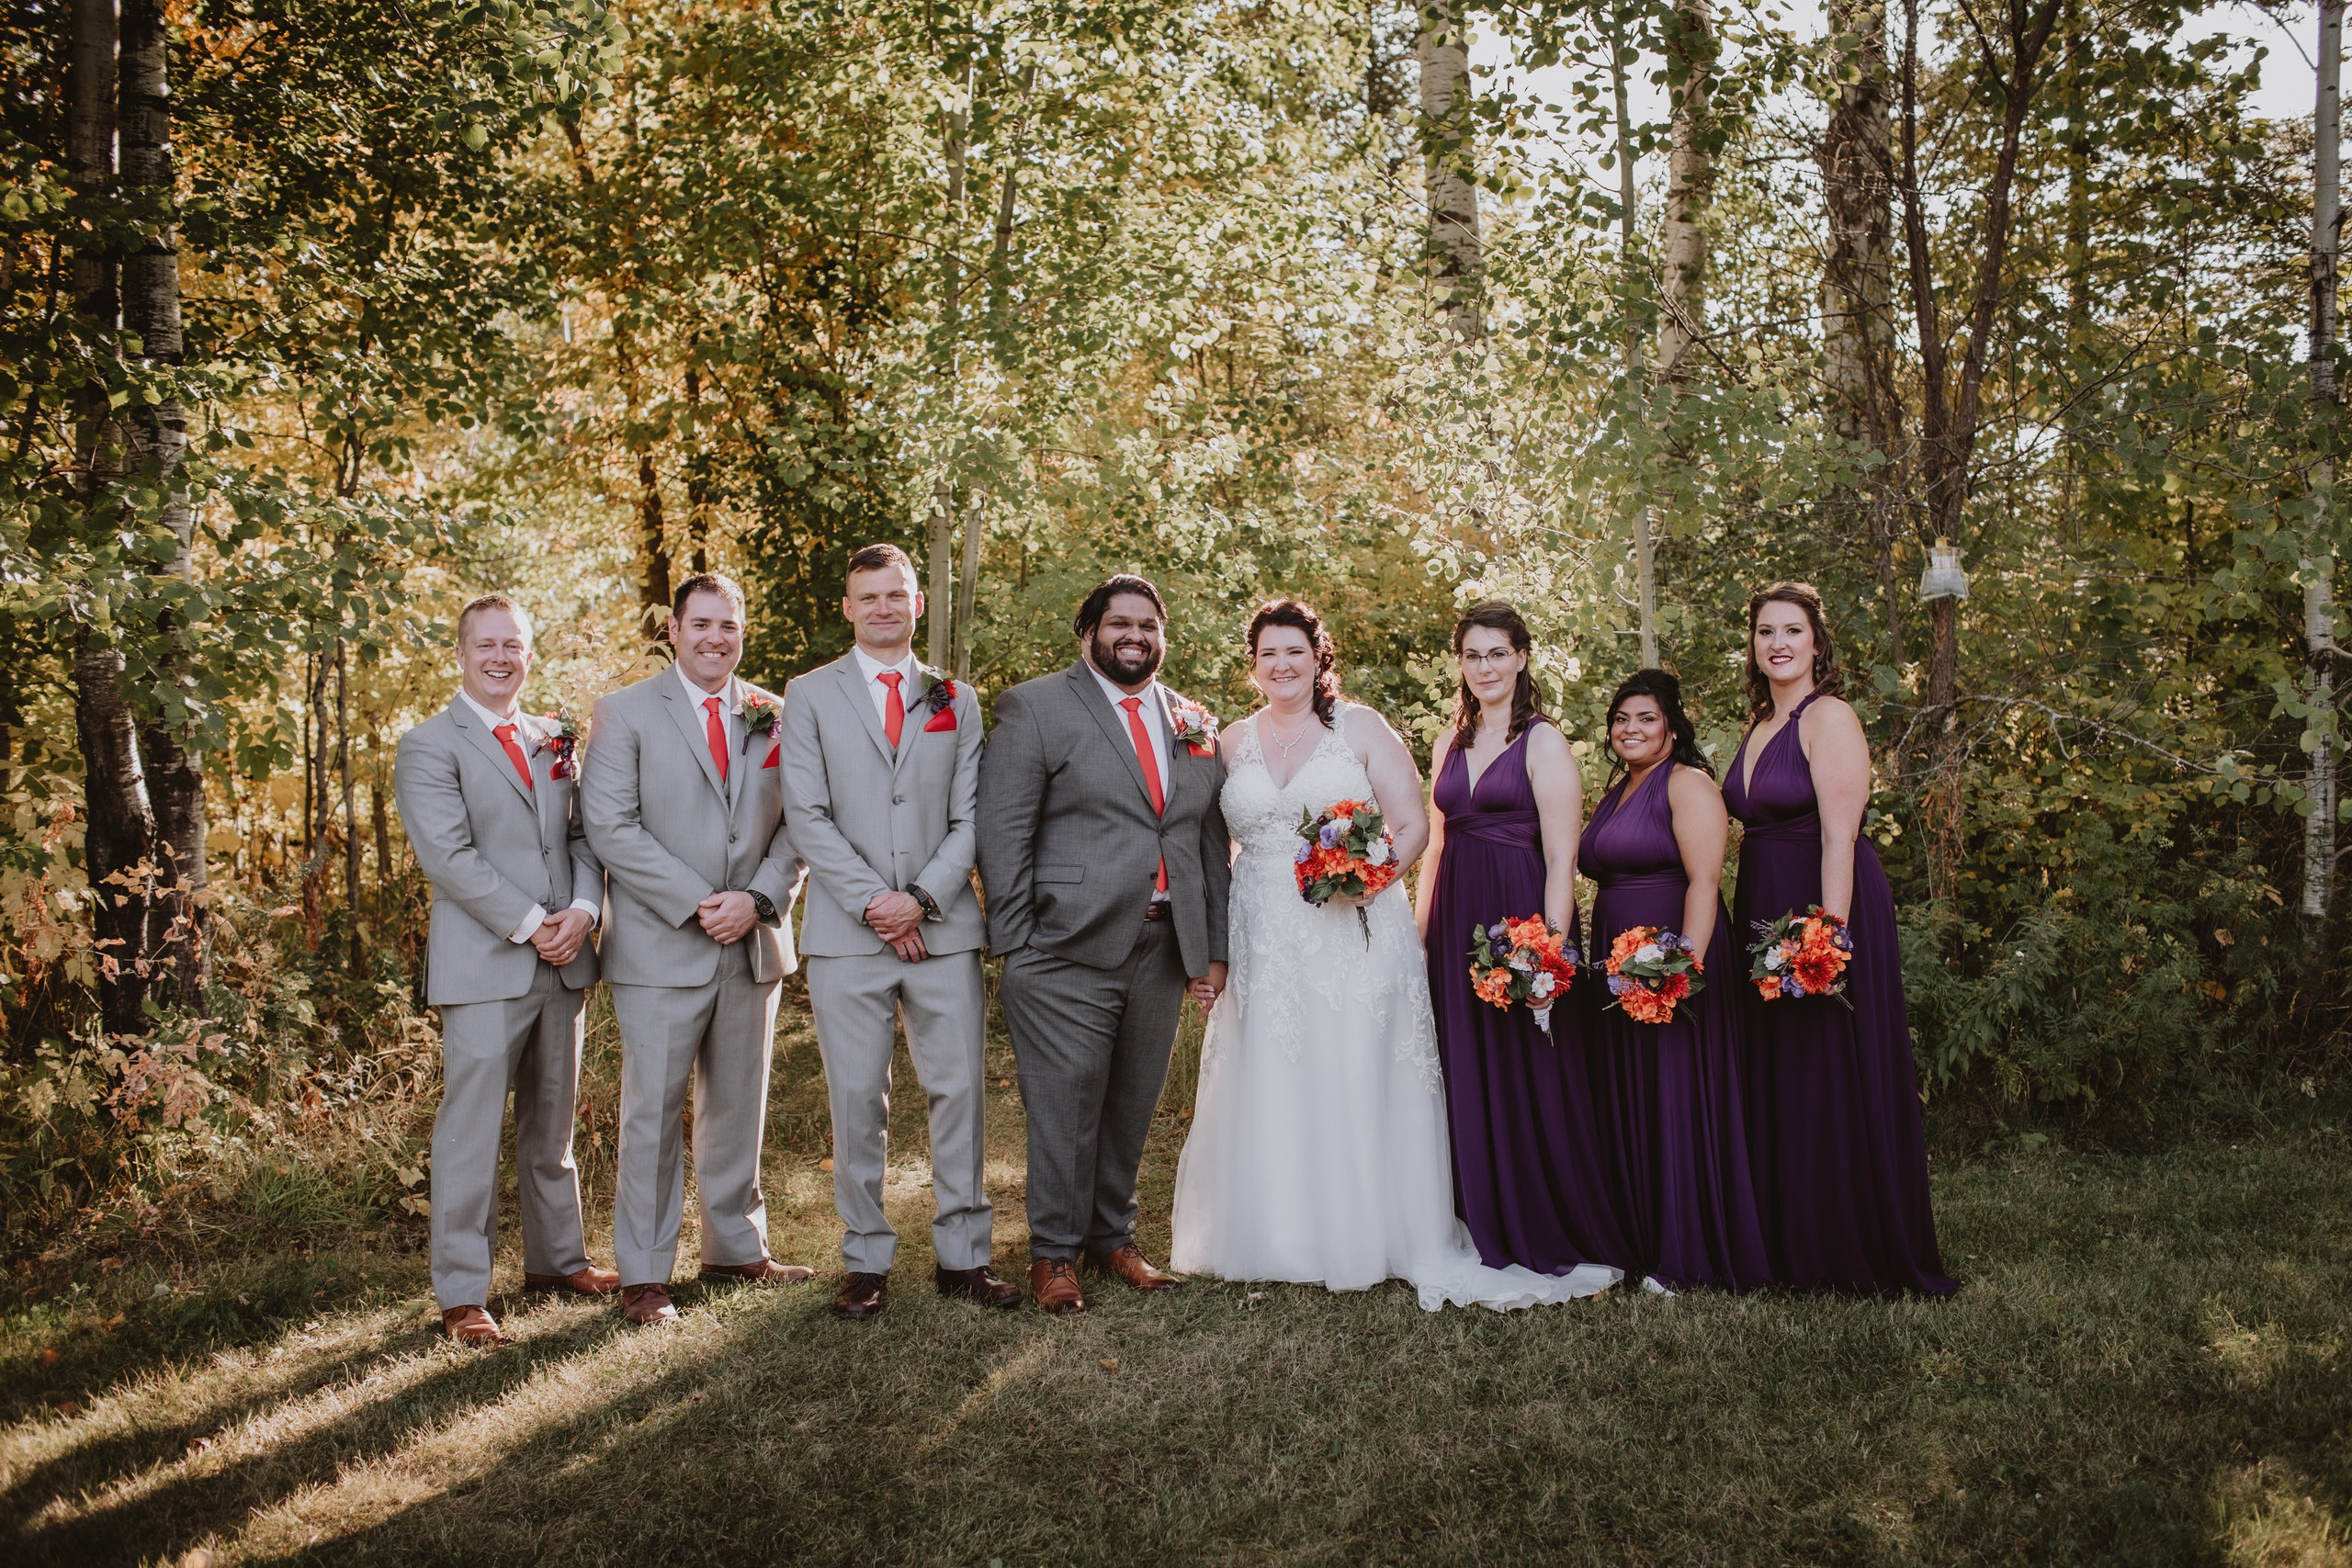 Bridal Party Portrait during fall wedding at Rivers Edge Resort.